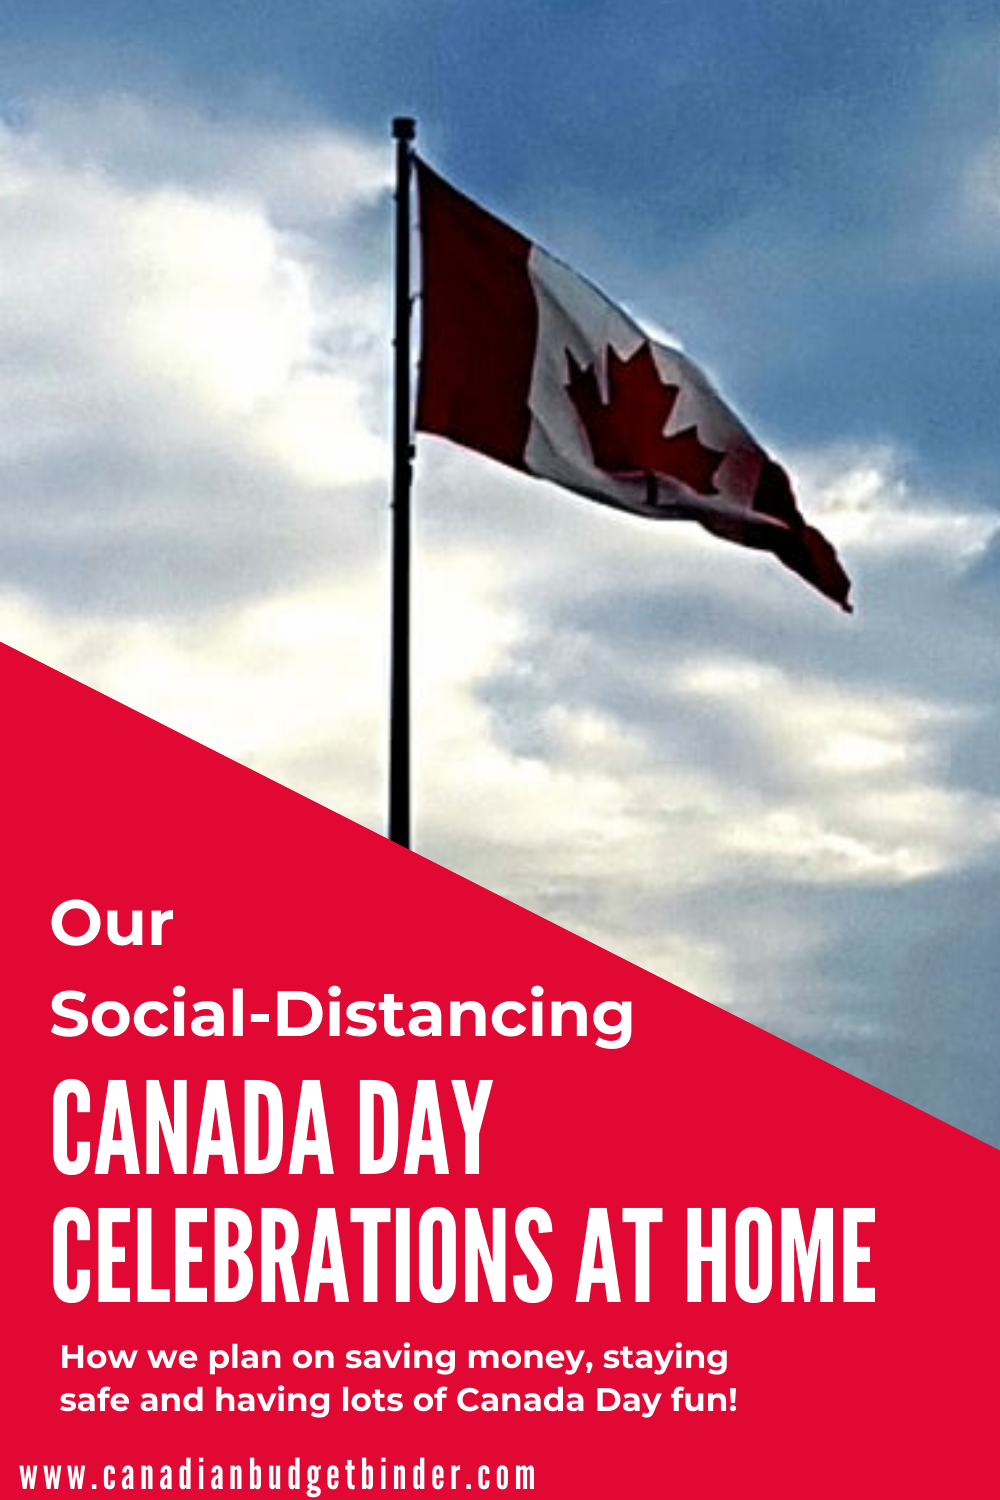 Canada Day Self-Distancing